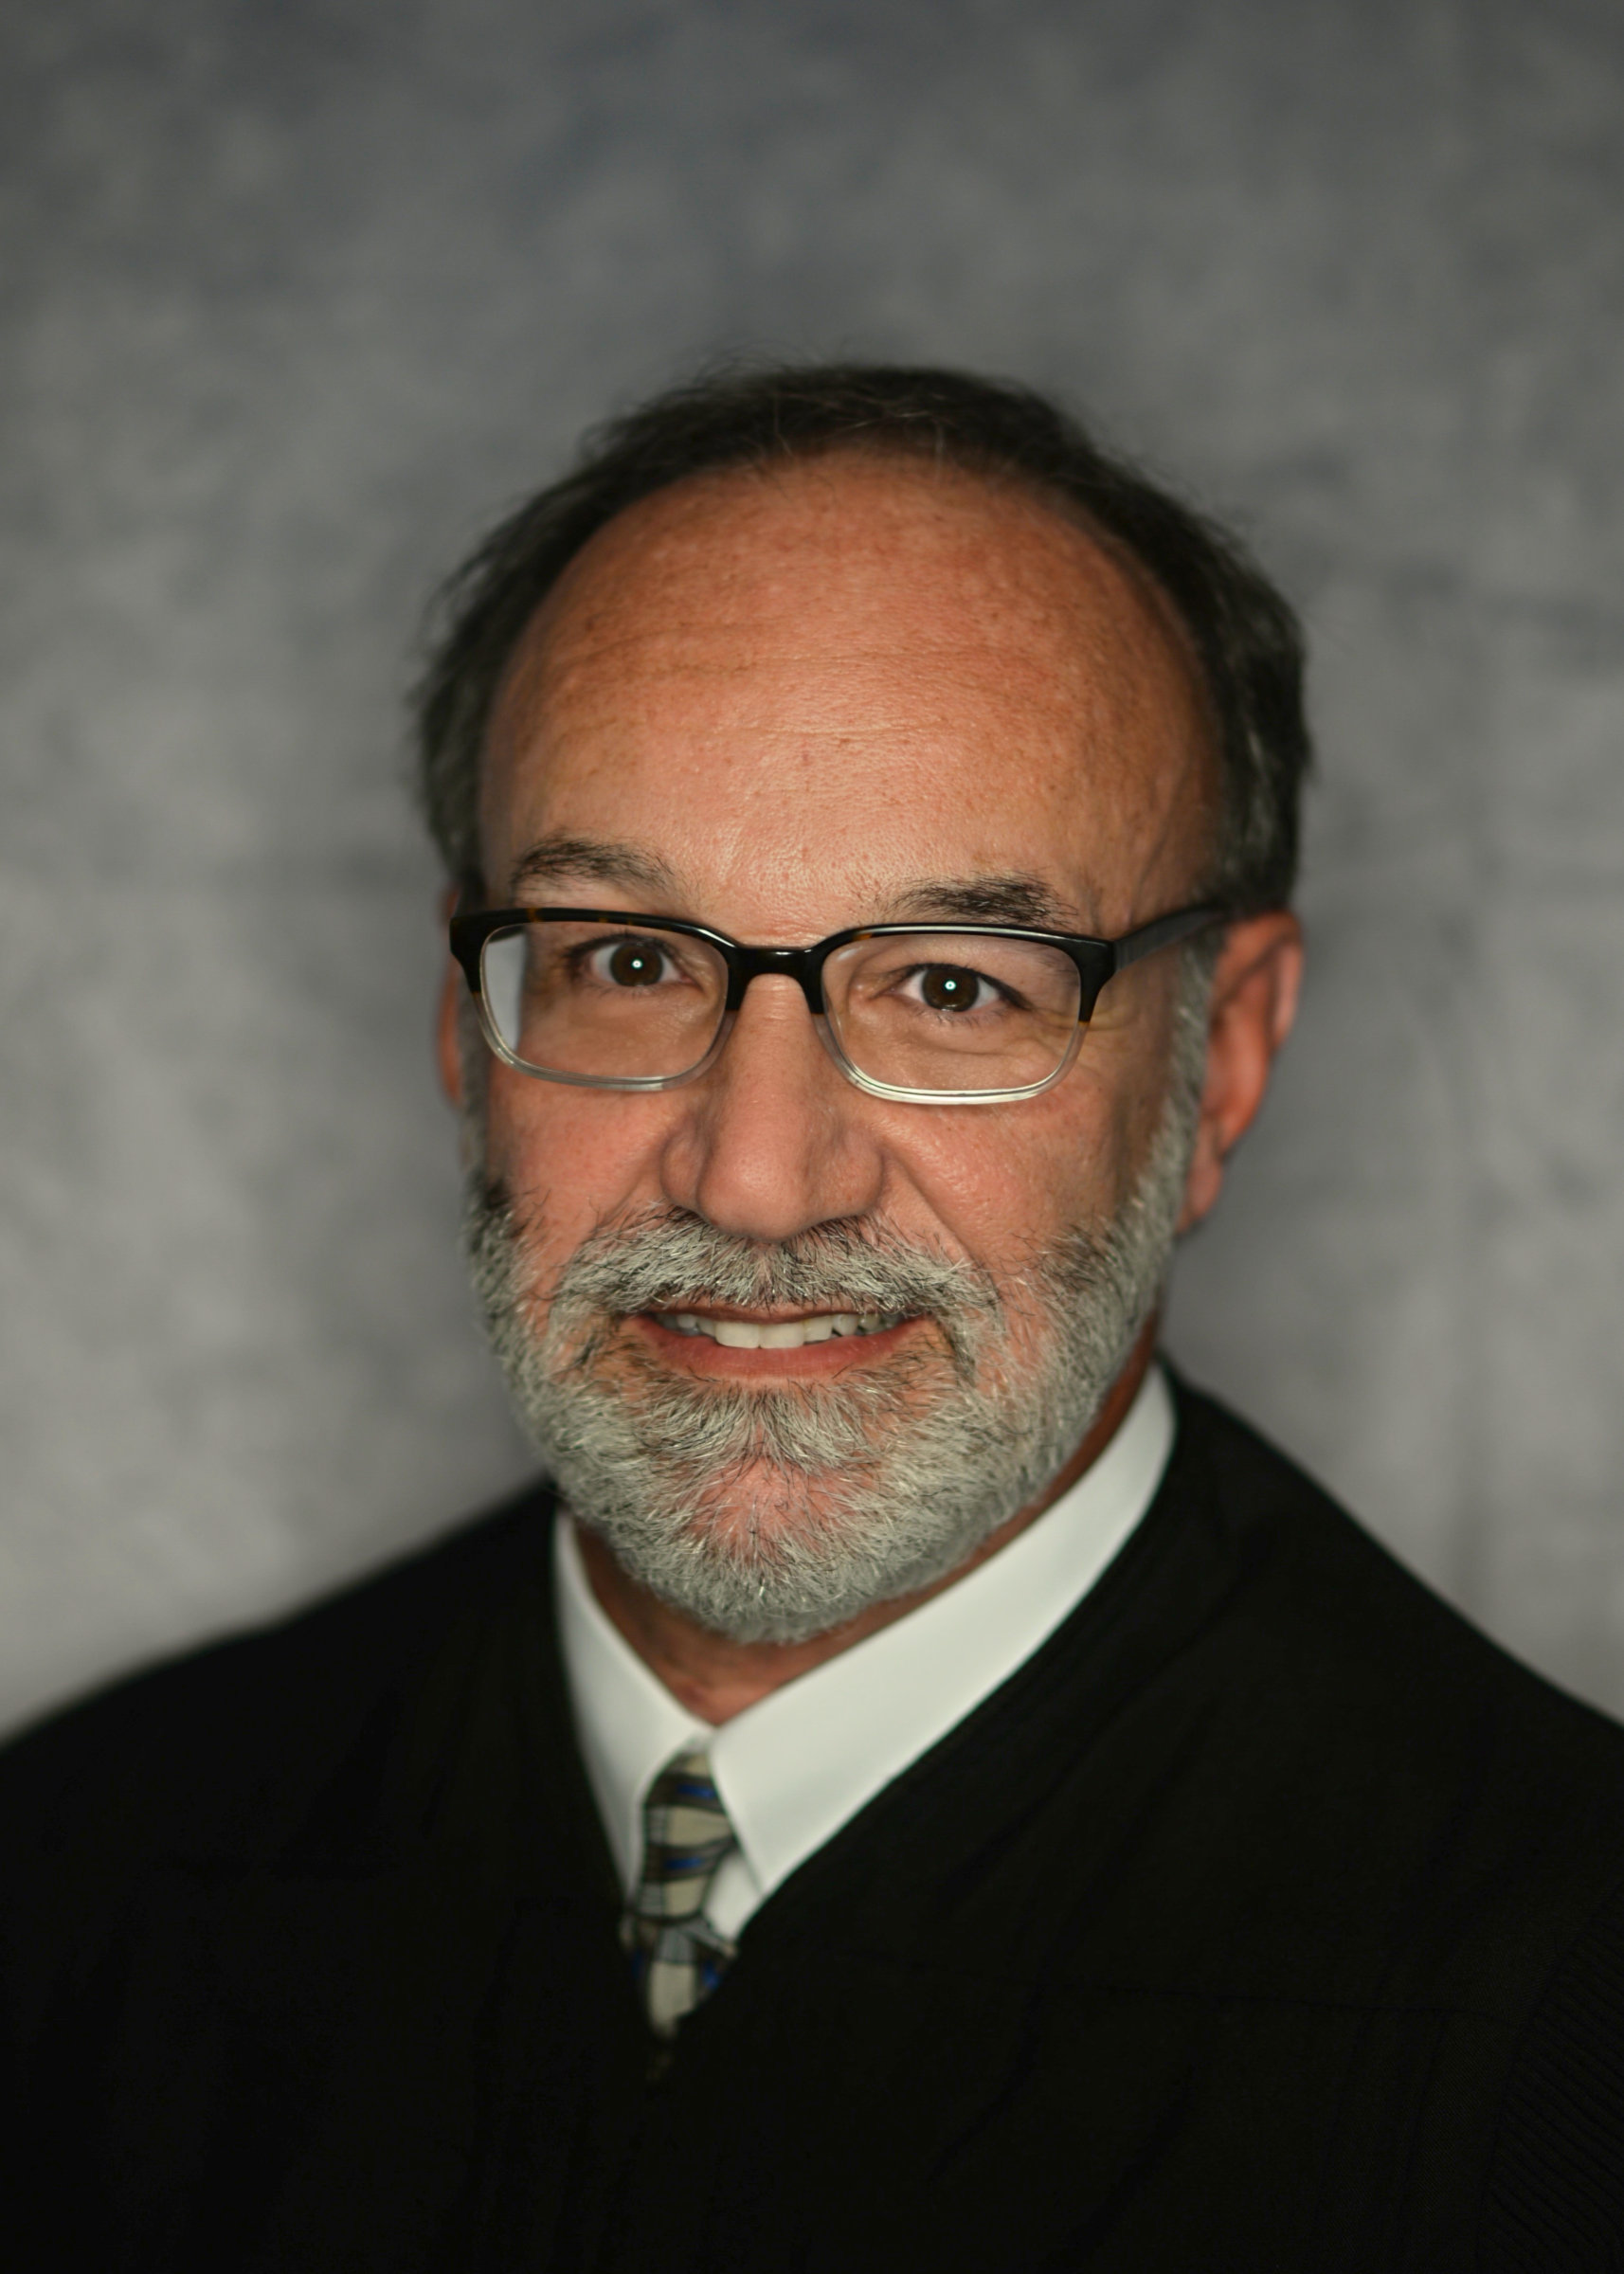 Judge DeThomasis